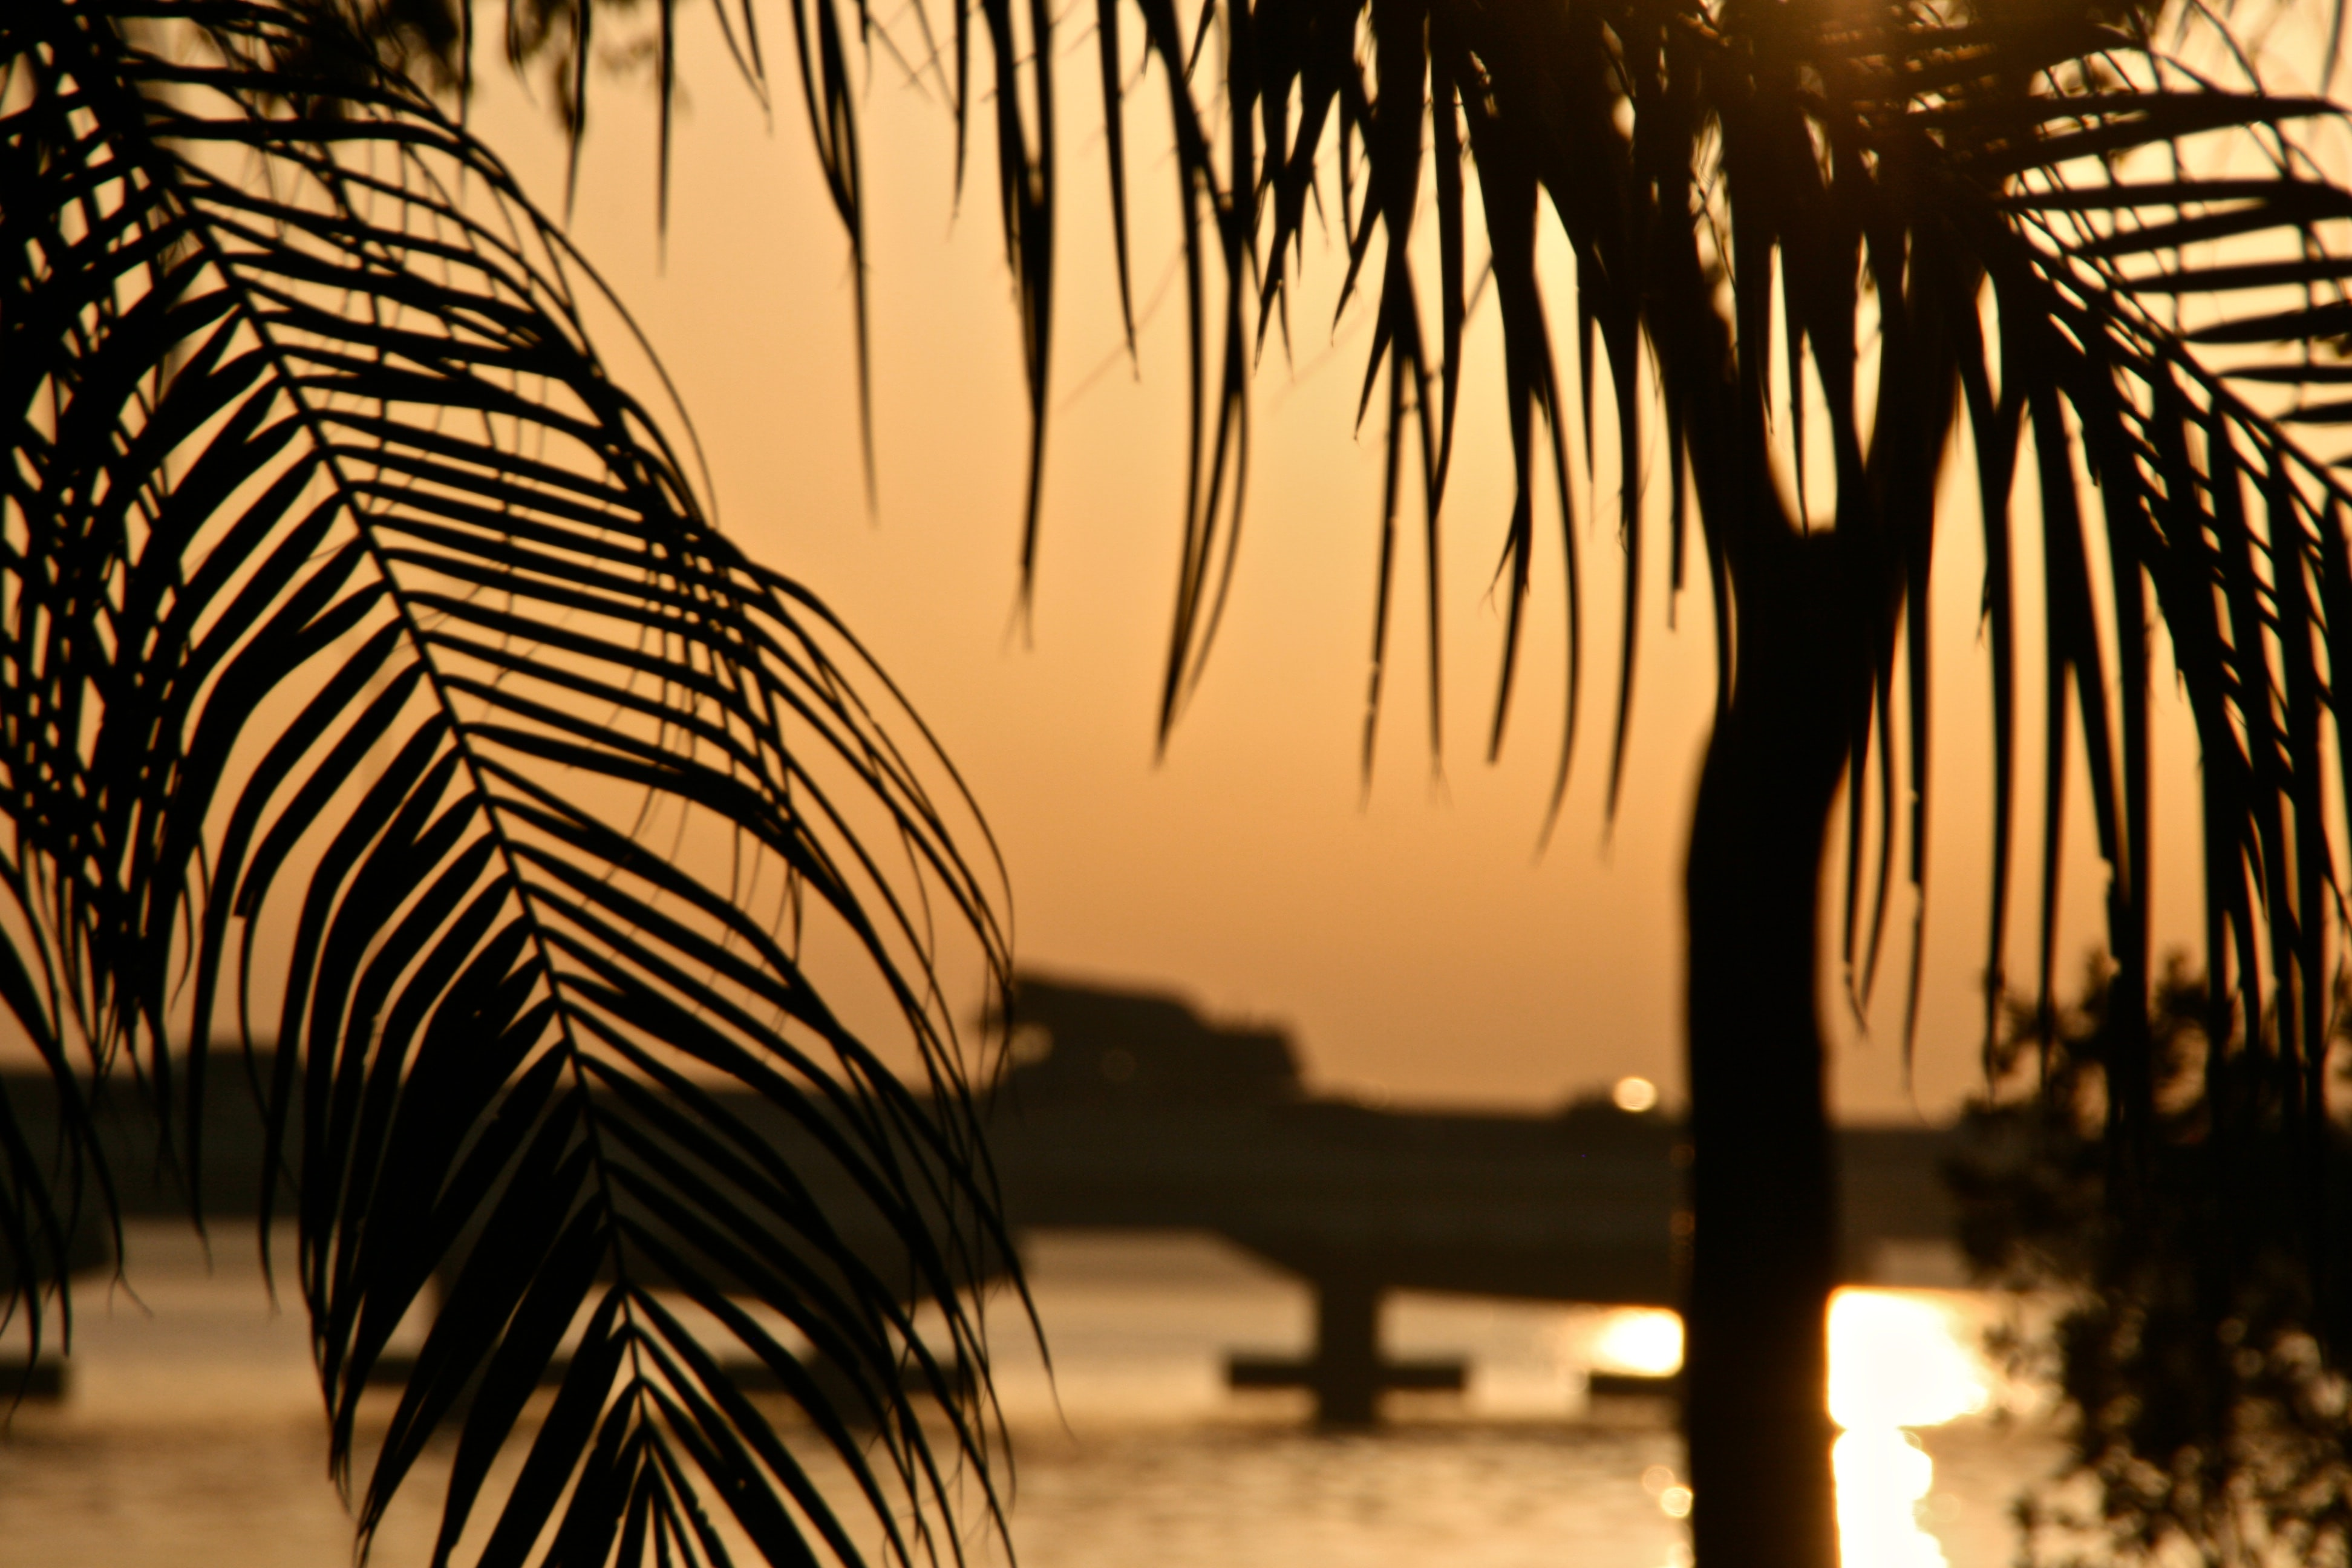 Palm fronds hanging over a sunset scene of a lagoon.